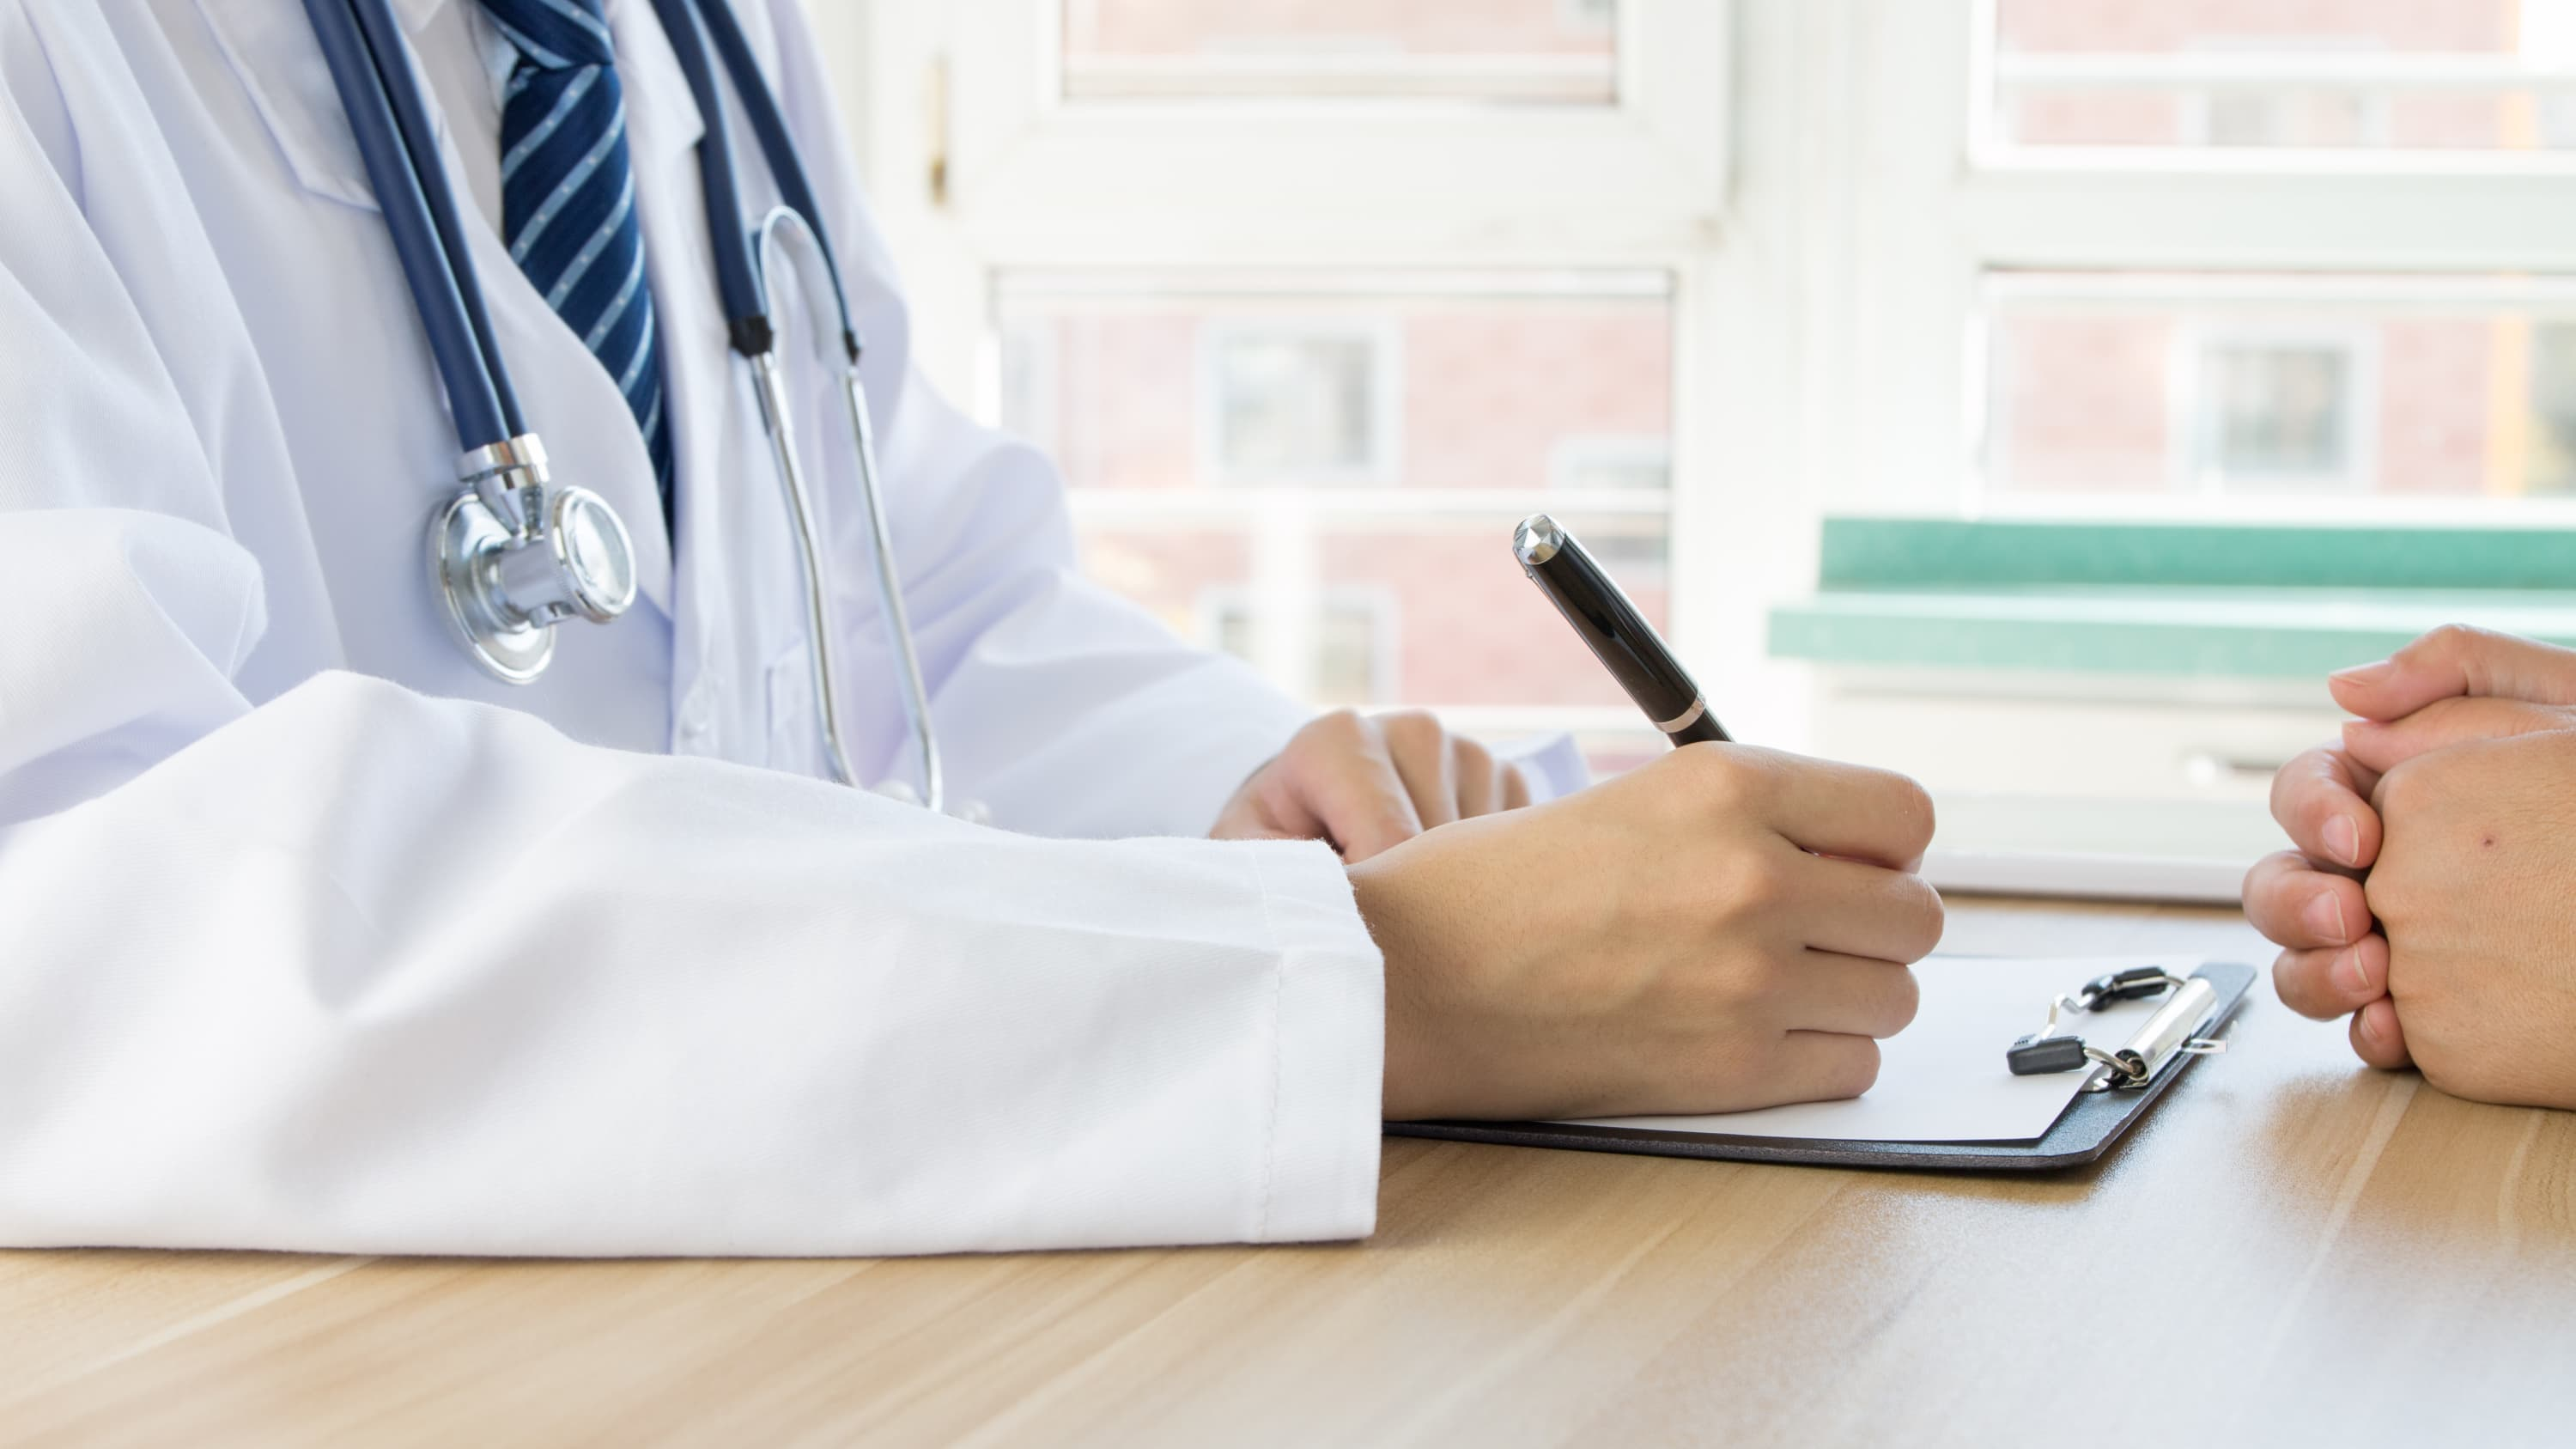 .A doctor writes notes for a patient, one possibly with Hepatitis B or C